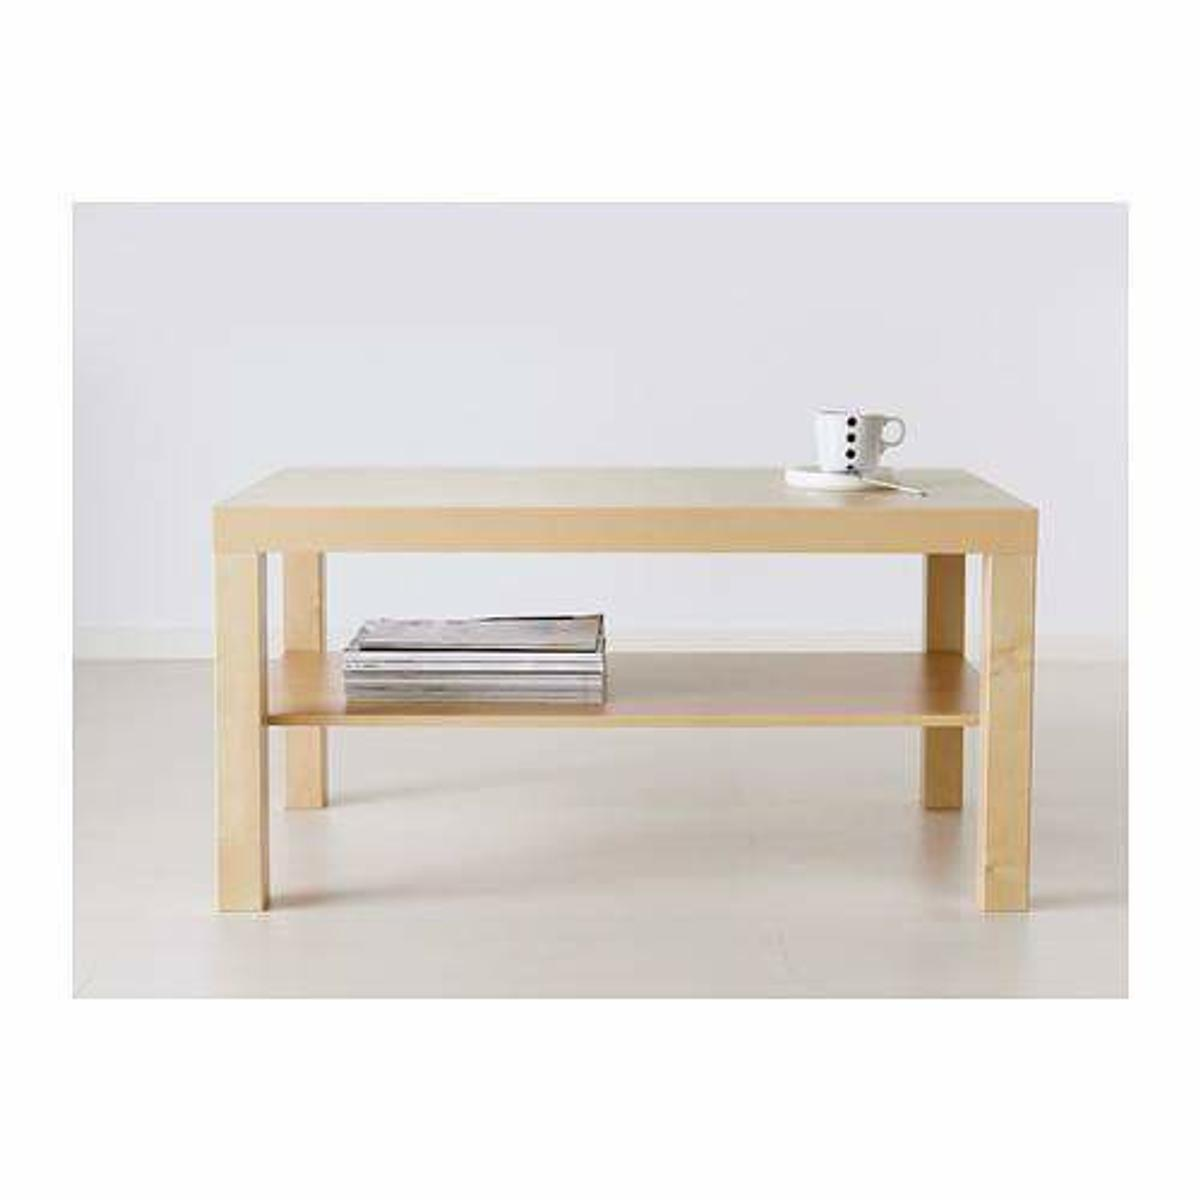 Ikea Lack Couchtisch Birke 90x55cm In 10245 Berlin For 5 00 For Sale Shpock